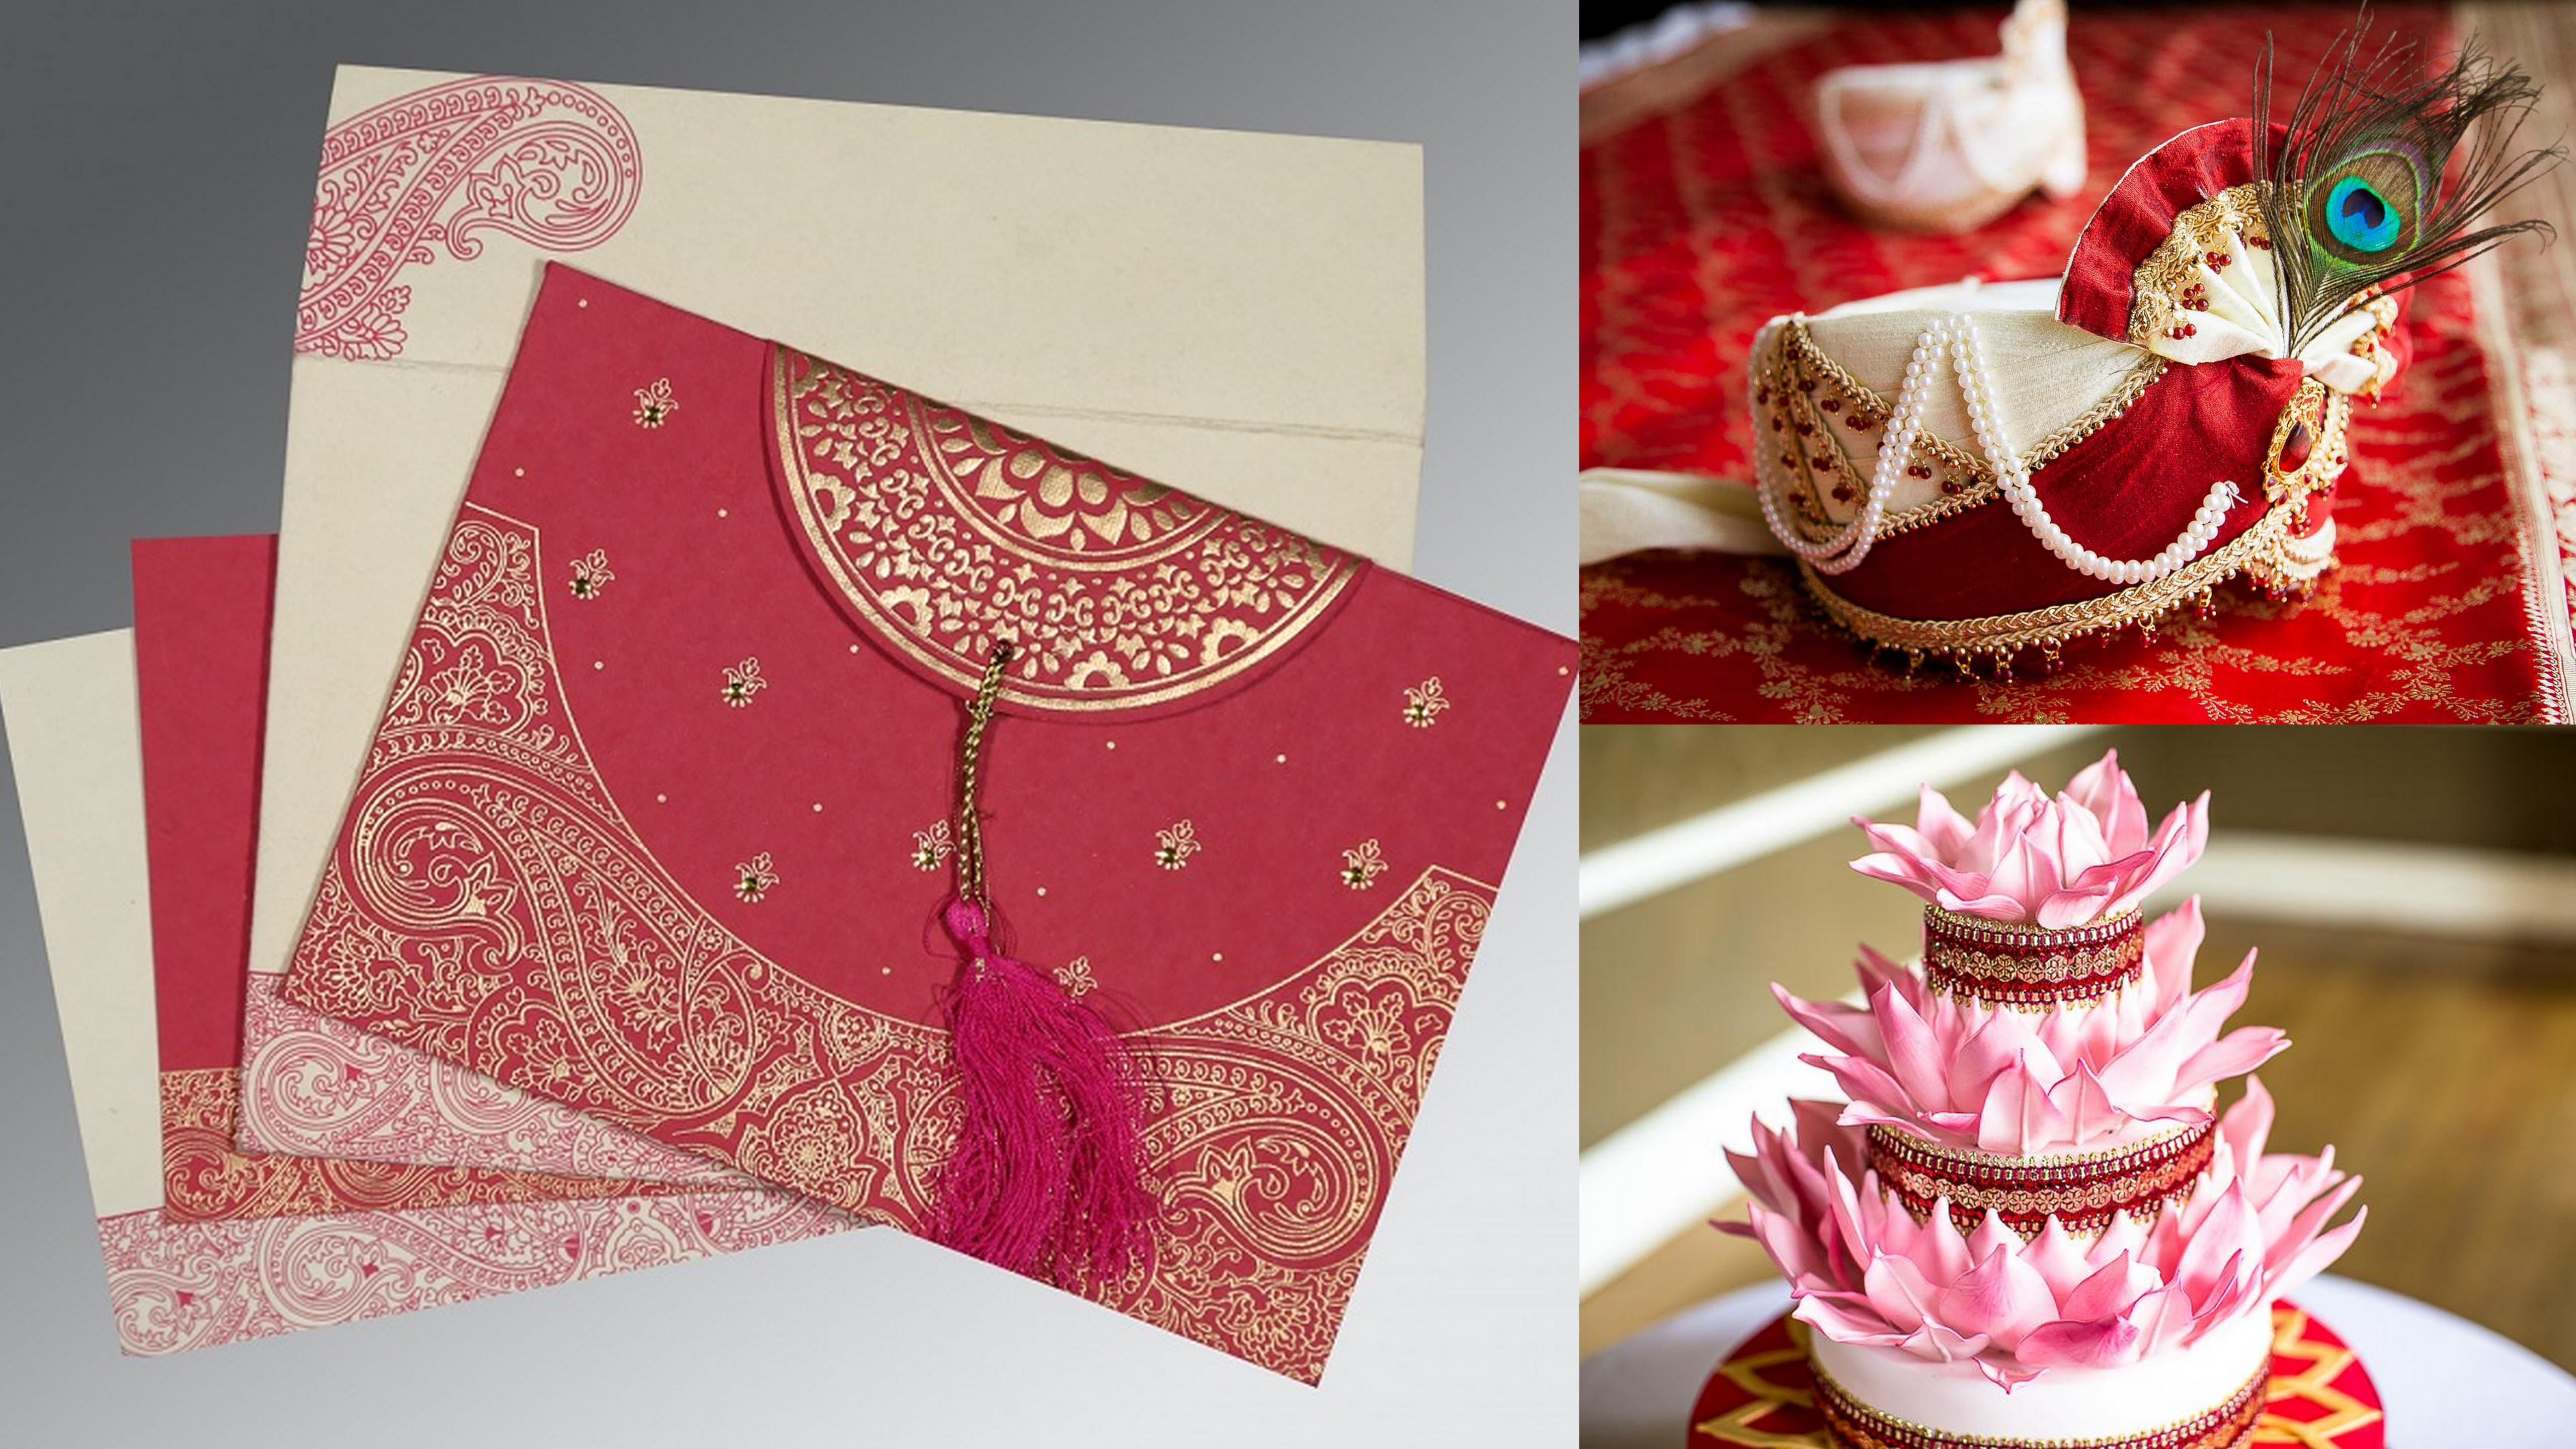 8 mistakes you should avoid while choosing hindu wedding cards wedding cards Hindu wedding card WeddingCards 2